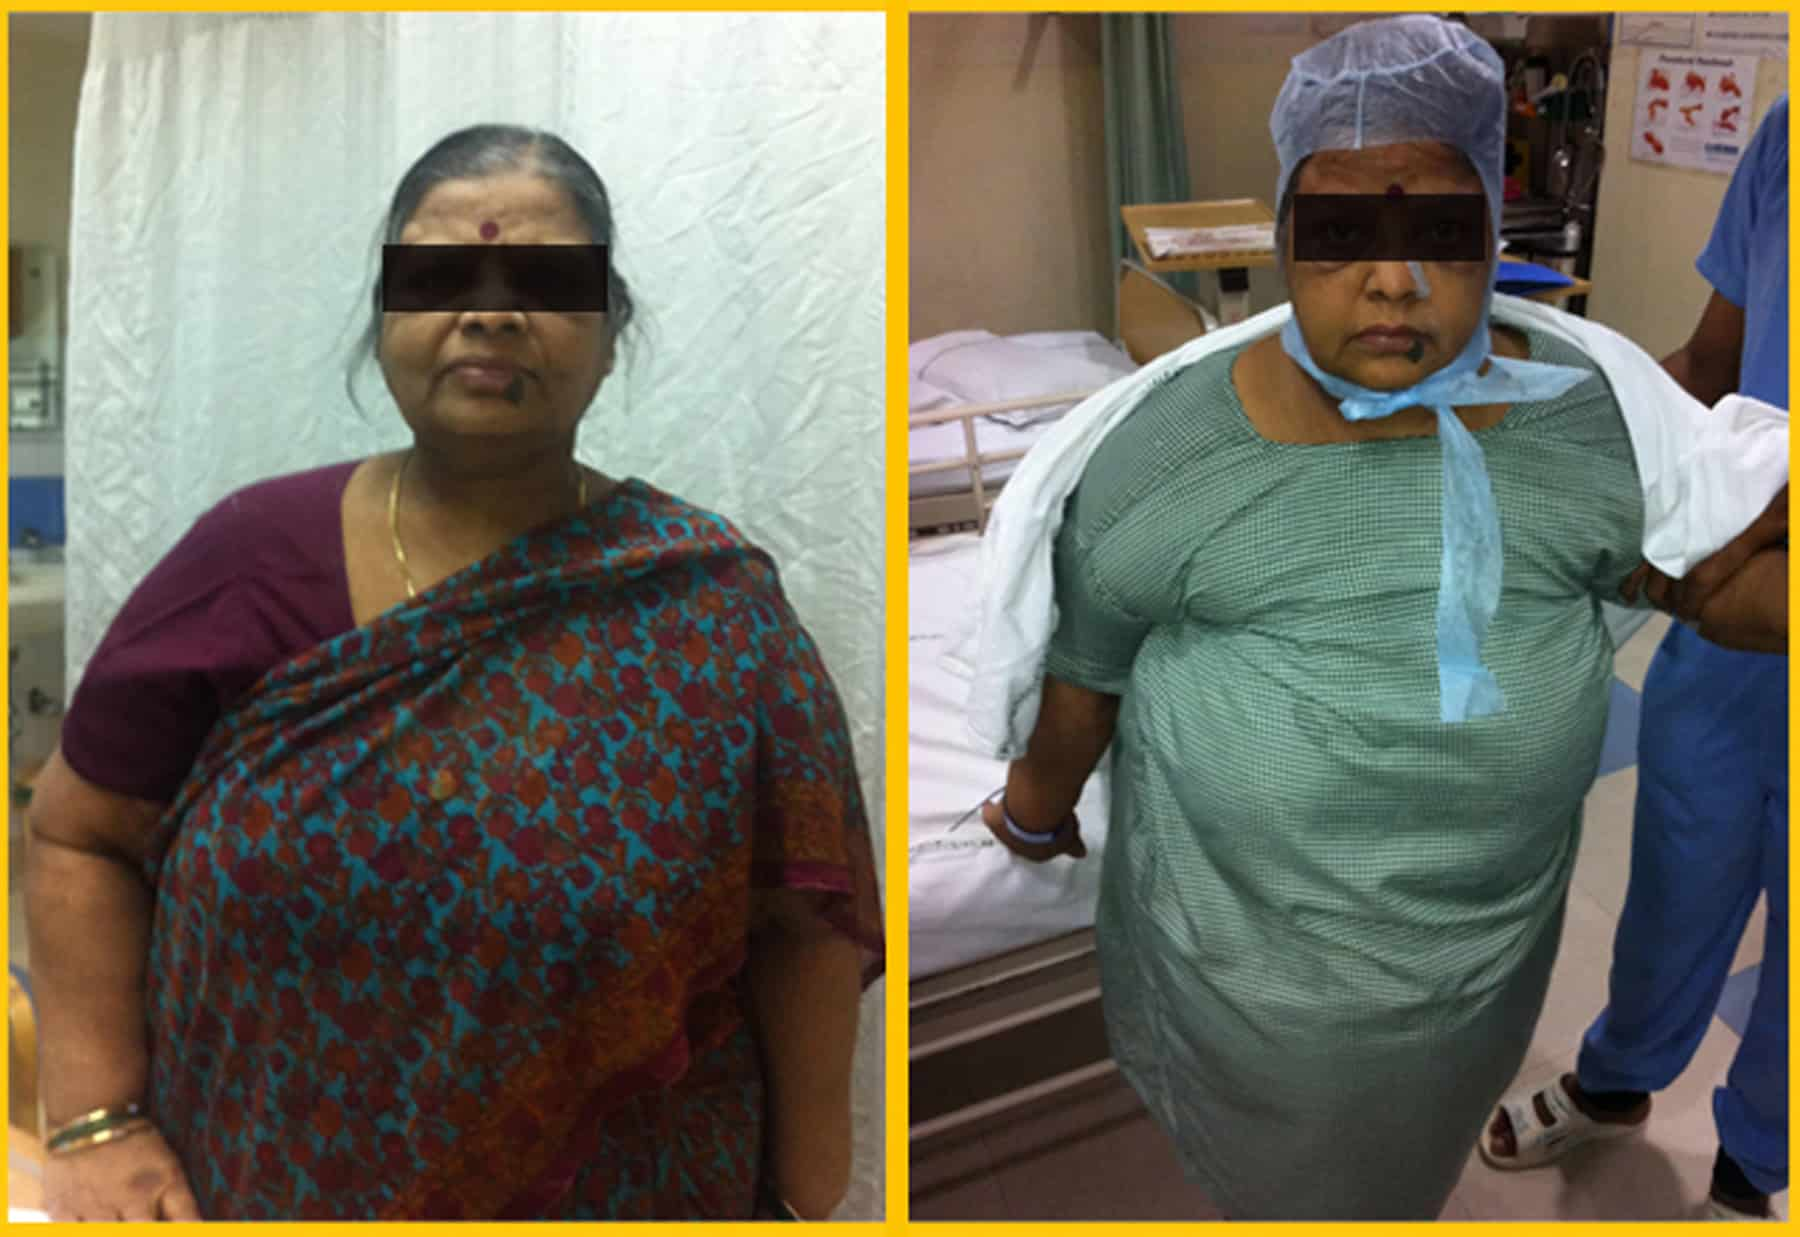 Bariatric surgery results - Weight loss reduction pictures